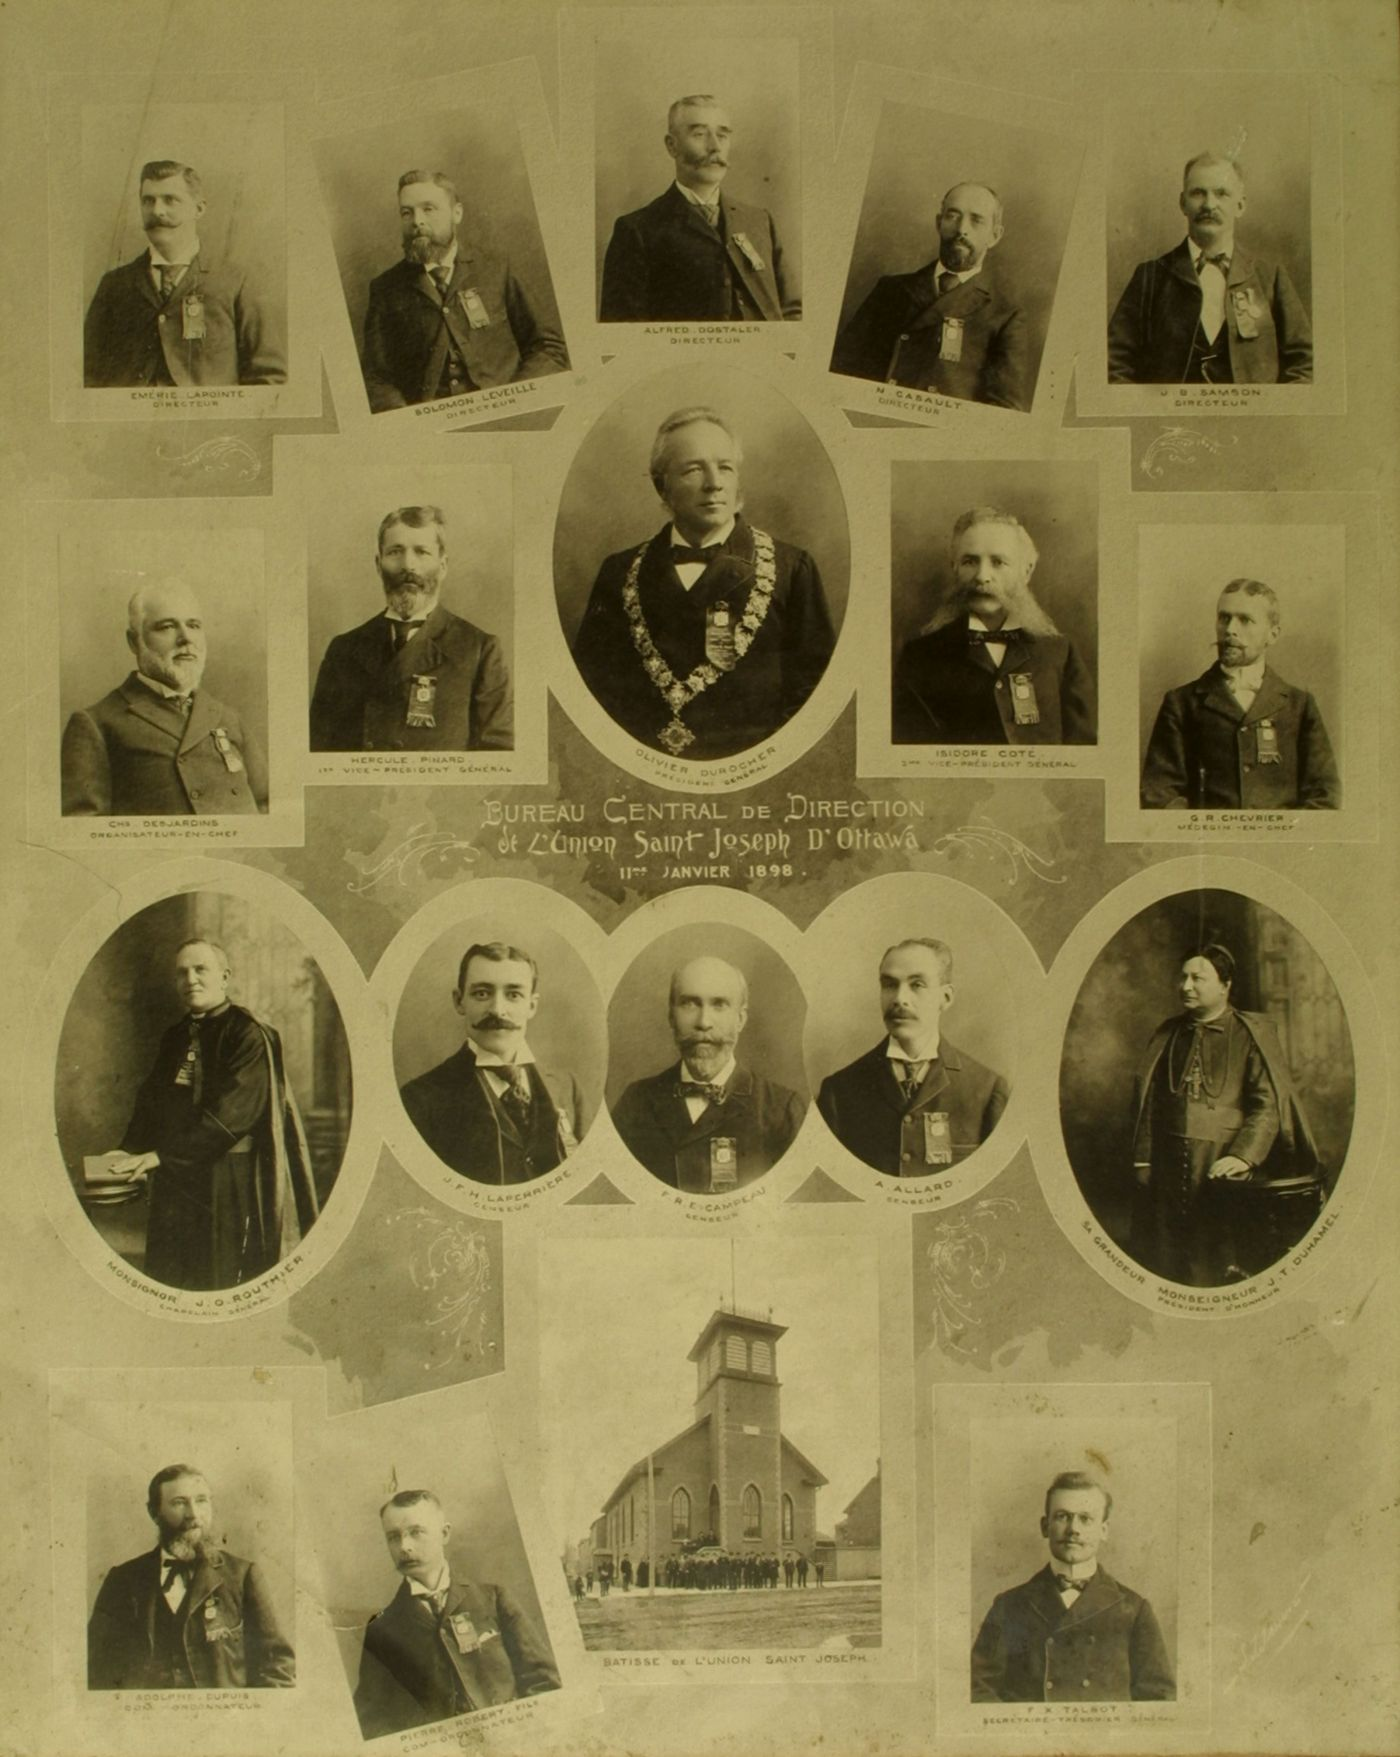 Display board with 18 black and white photographs, depicting men in suits and ties, with the exception of two clerics. Names and titles appear below the photographs. The man in the middle picture wears  the Mayor's chain of office. A picture of a two-storey building with large front tower is included, as well as a caption in French.